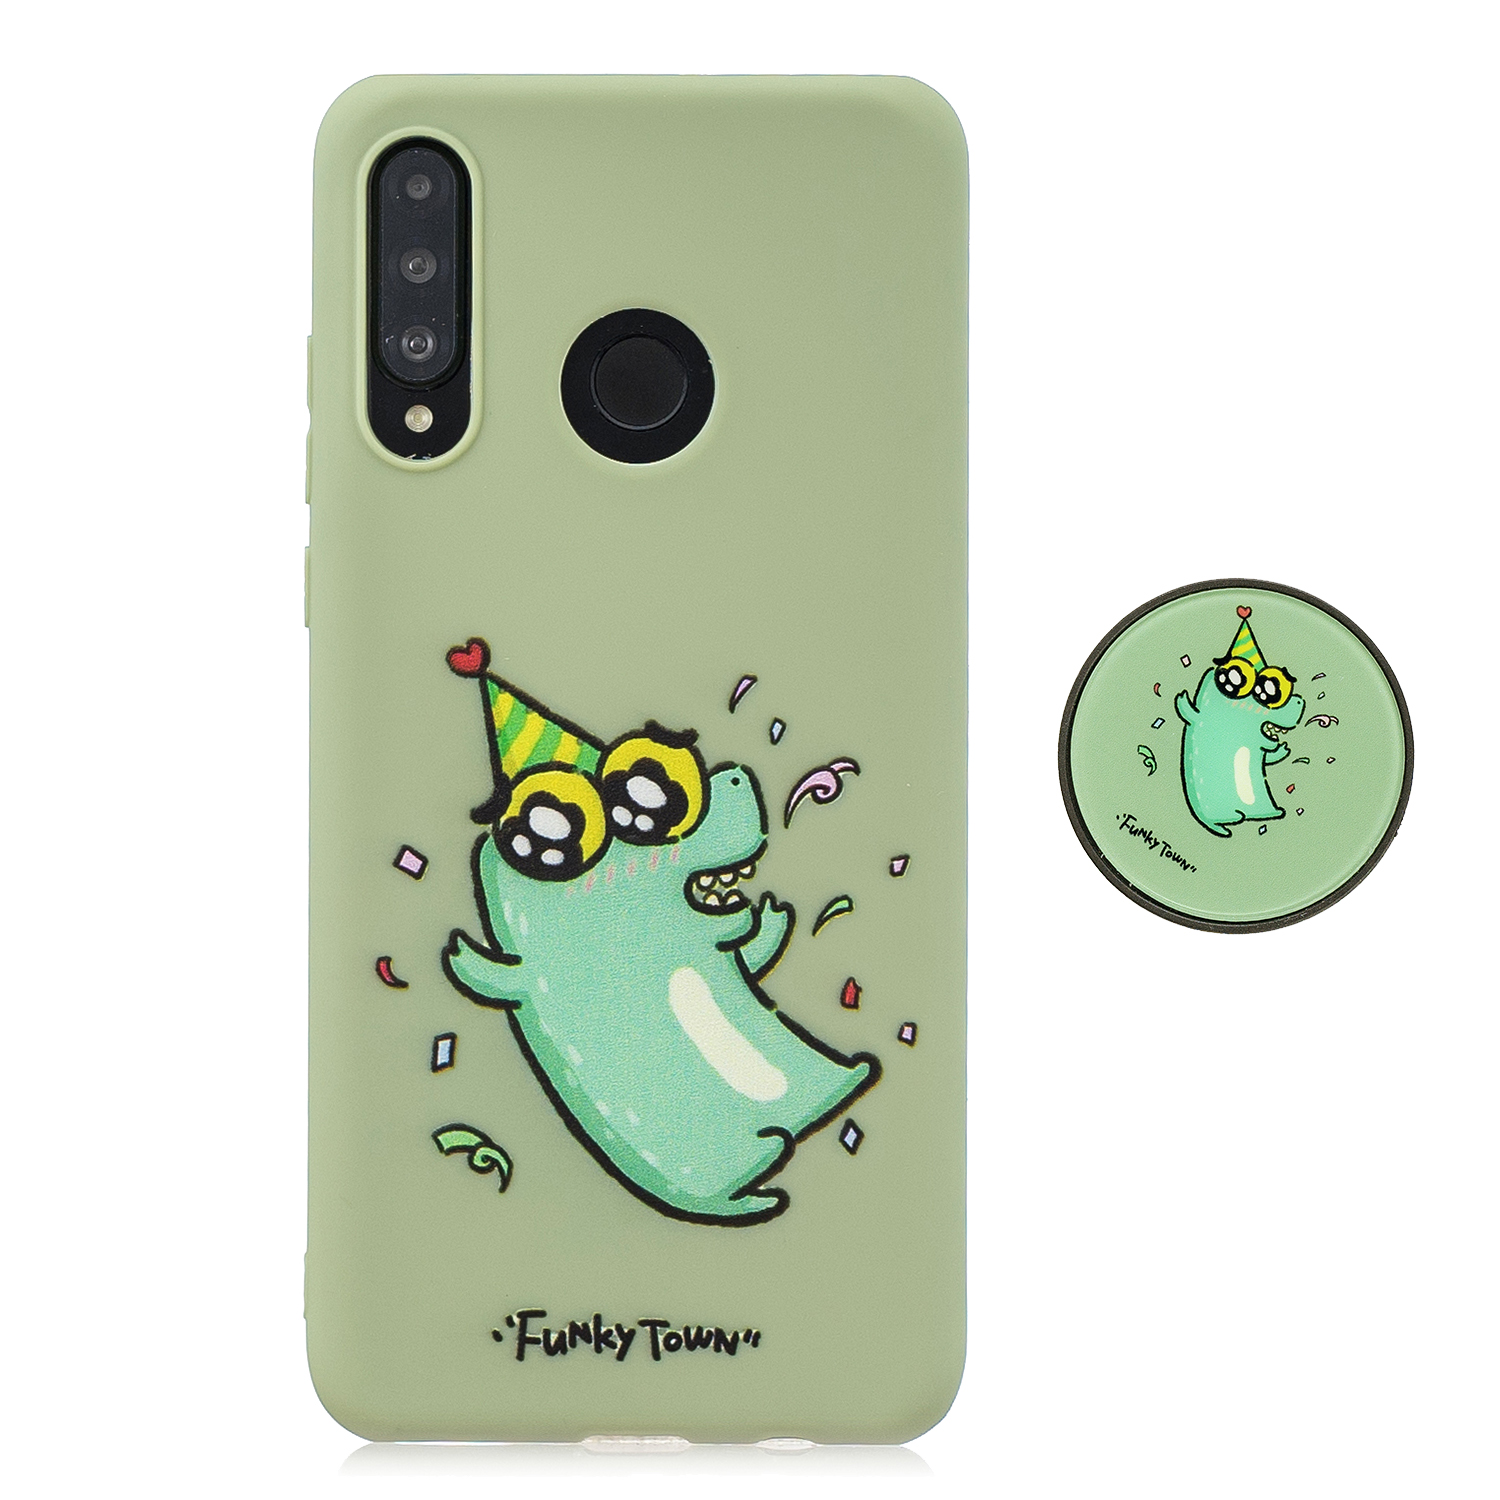 For HUAWEI P30 lite Cute Cartoon Phone Case Ultra Thin Lightweight Soft TPU Phone Case Pure Color Phone Cover with Matching Pattern Adjustable Bracket 2